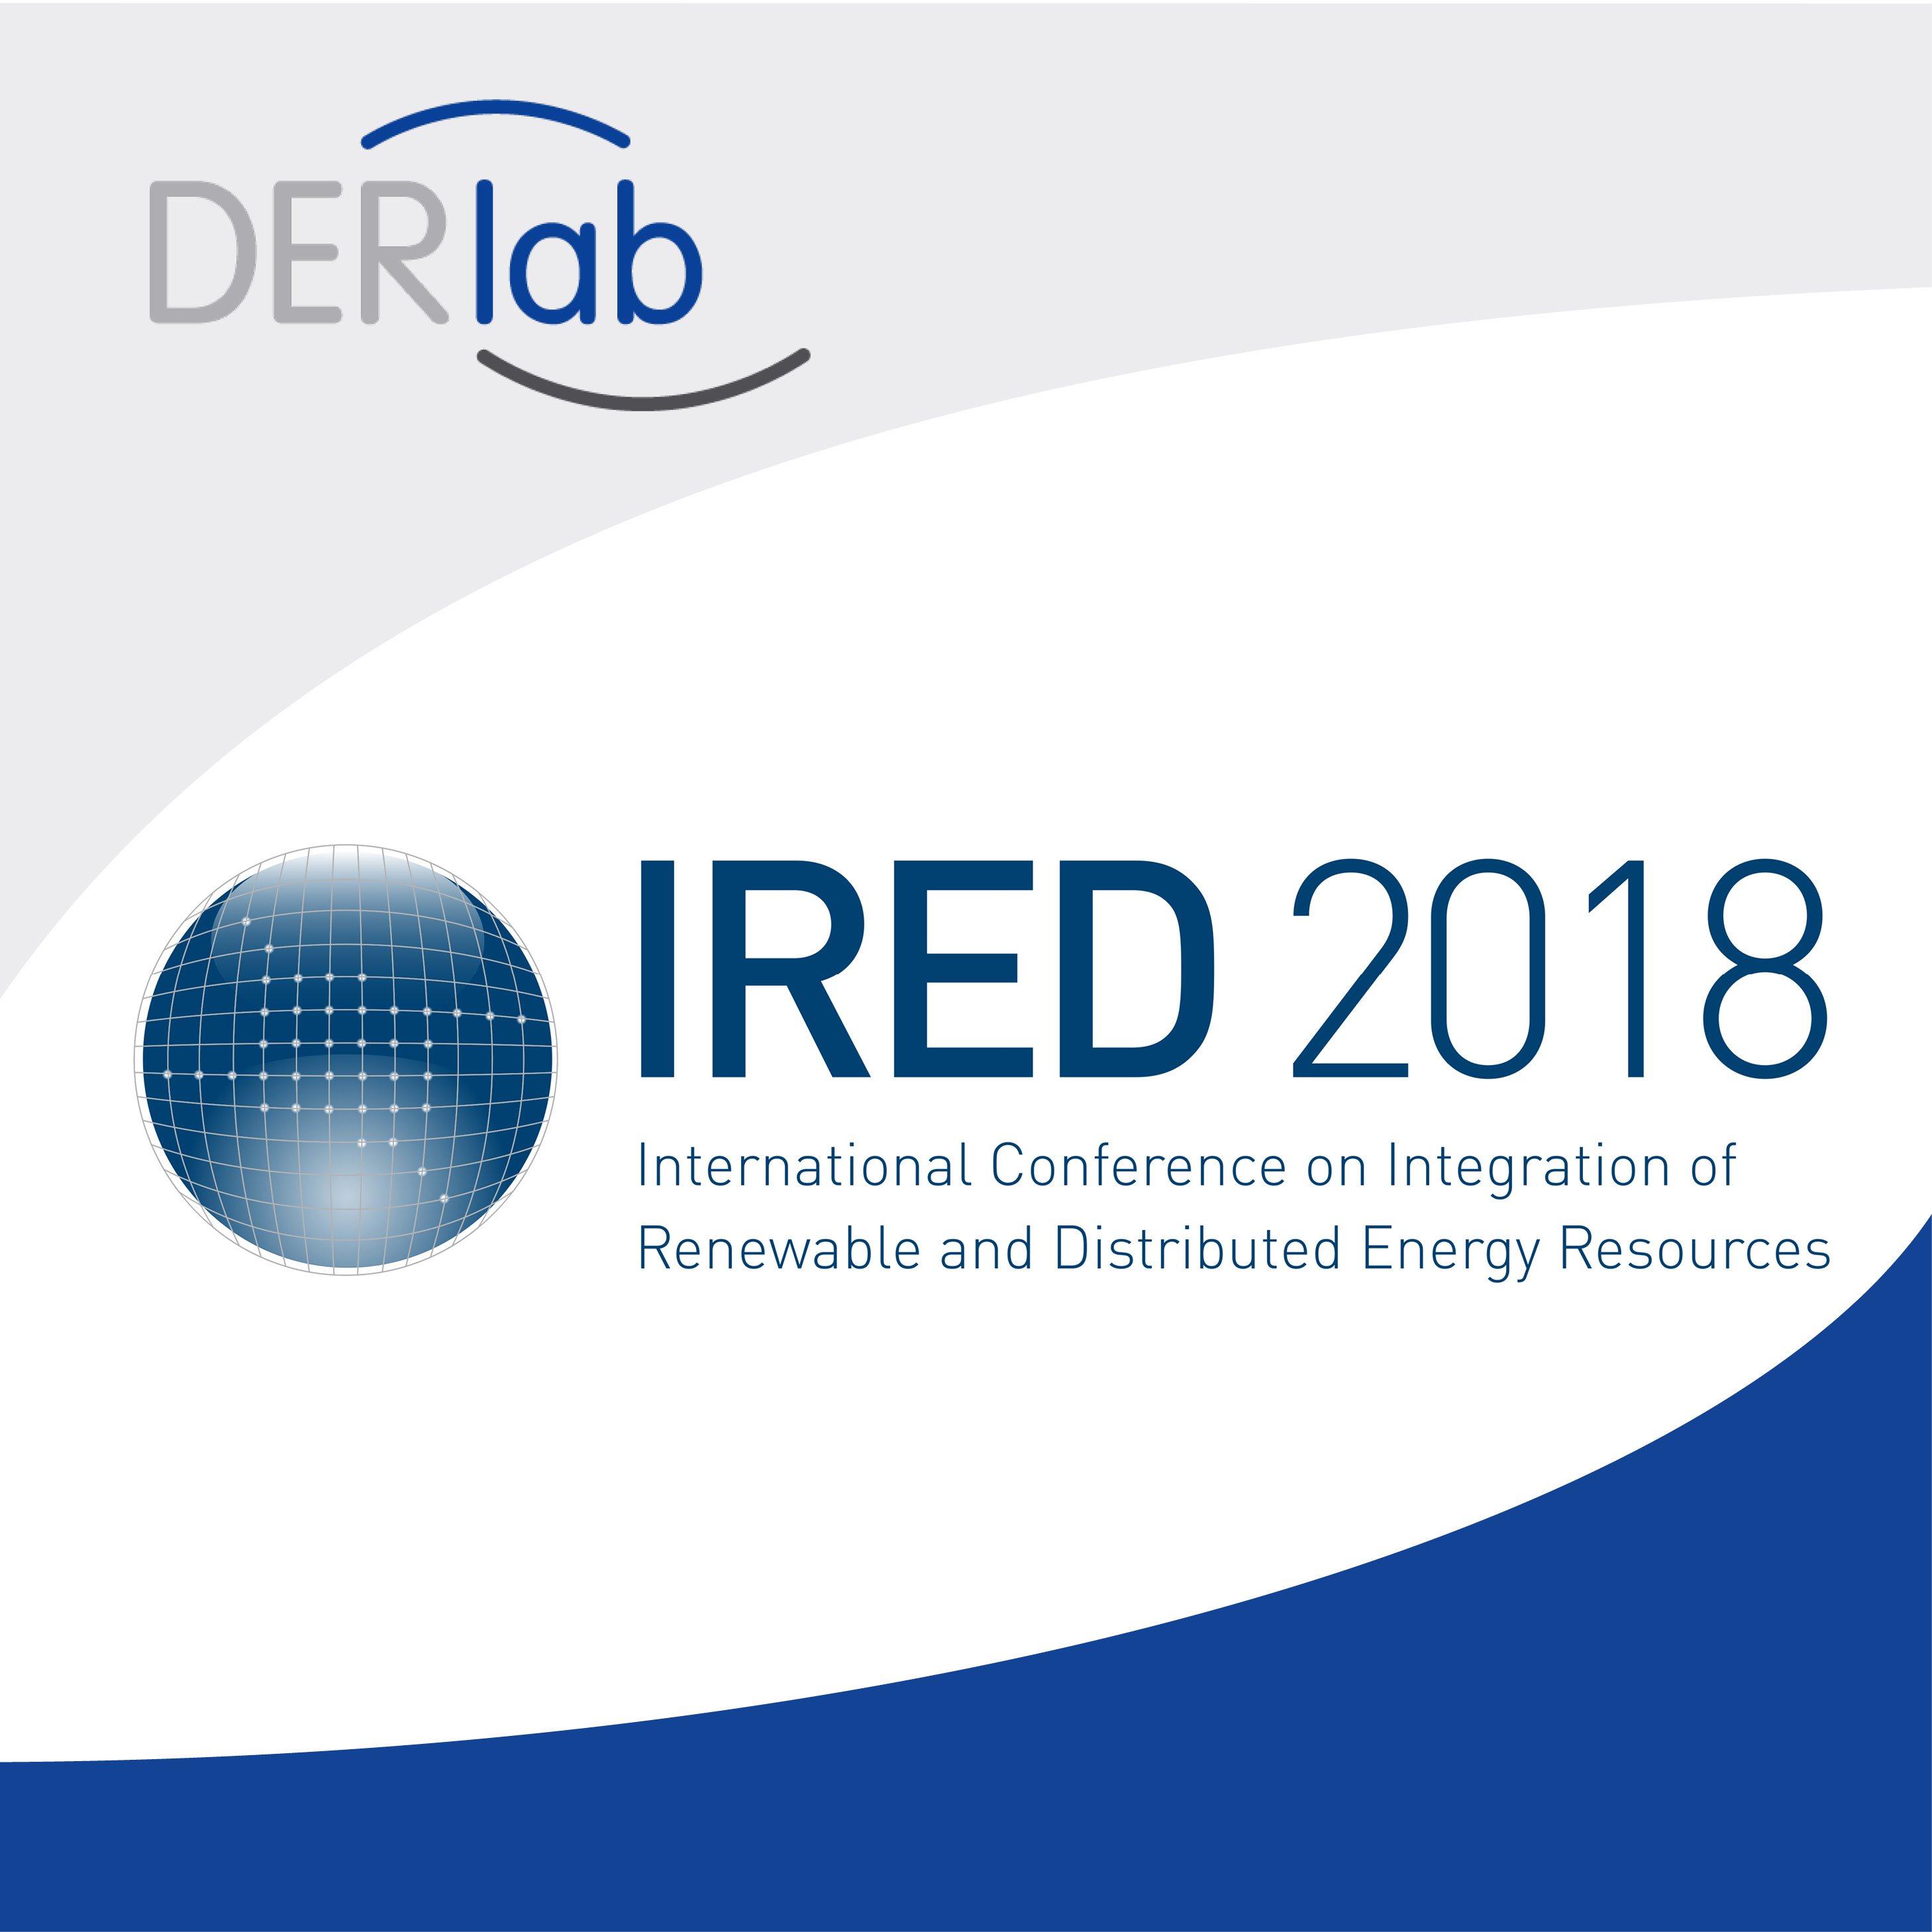 DERlab partners with IRED 2018